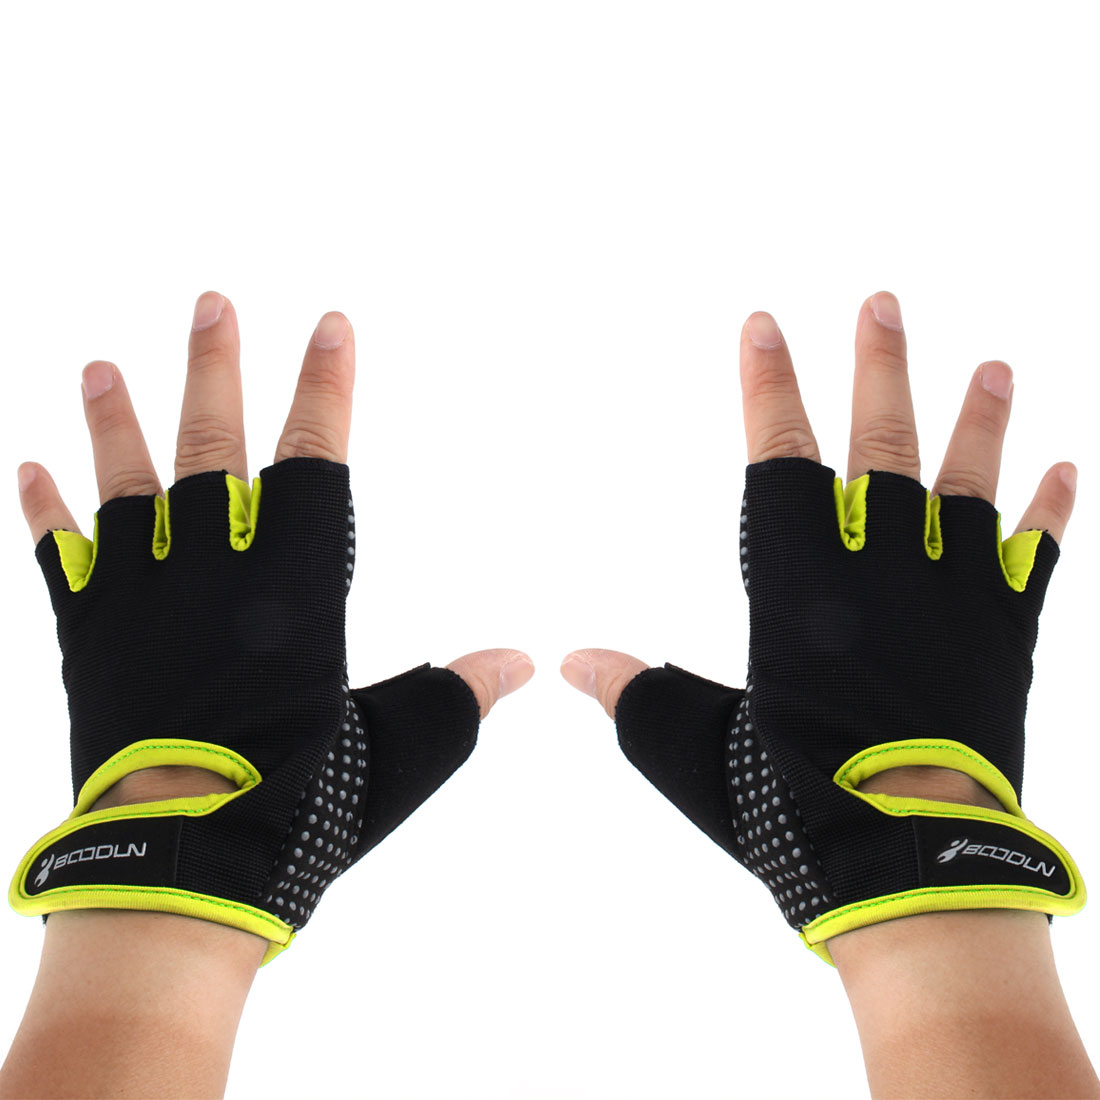 BOODUN Authorized Gym Workout Weight Lifting Training Adjustable Anti Slip Breathable Fitness Half Finger Gloves Yellow XL Size Pair